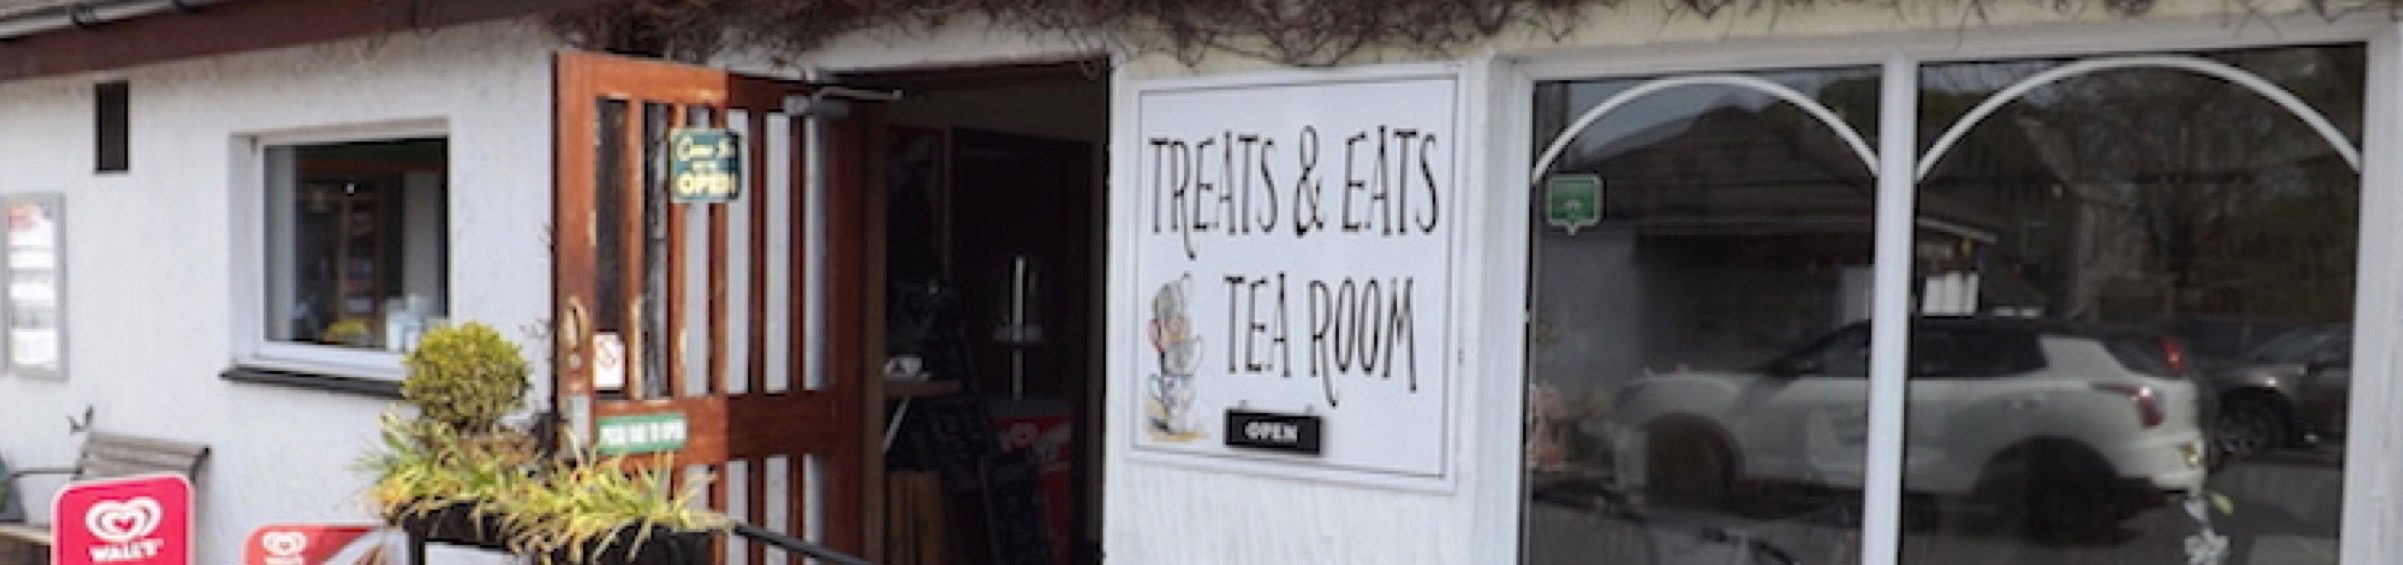 External view of Treats & Eats Tea Room, Colvend, south west Scotland